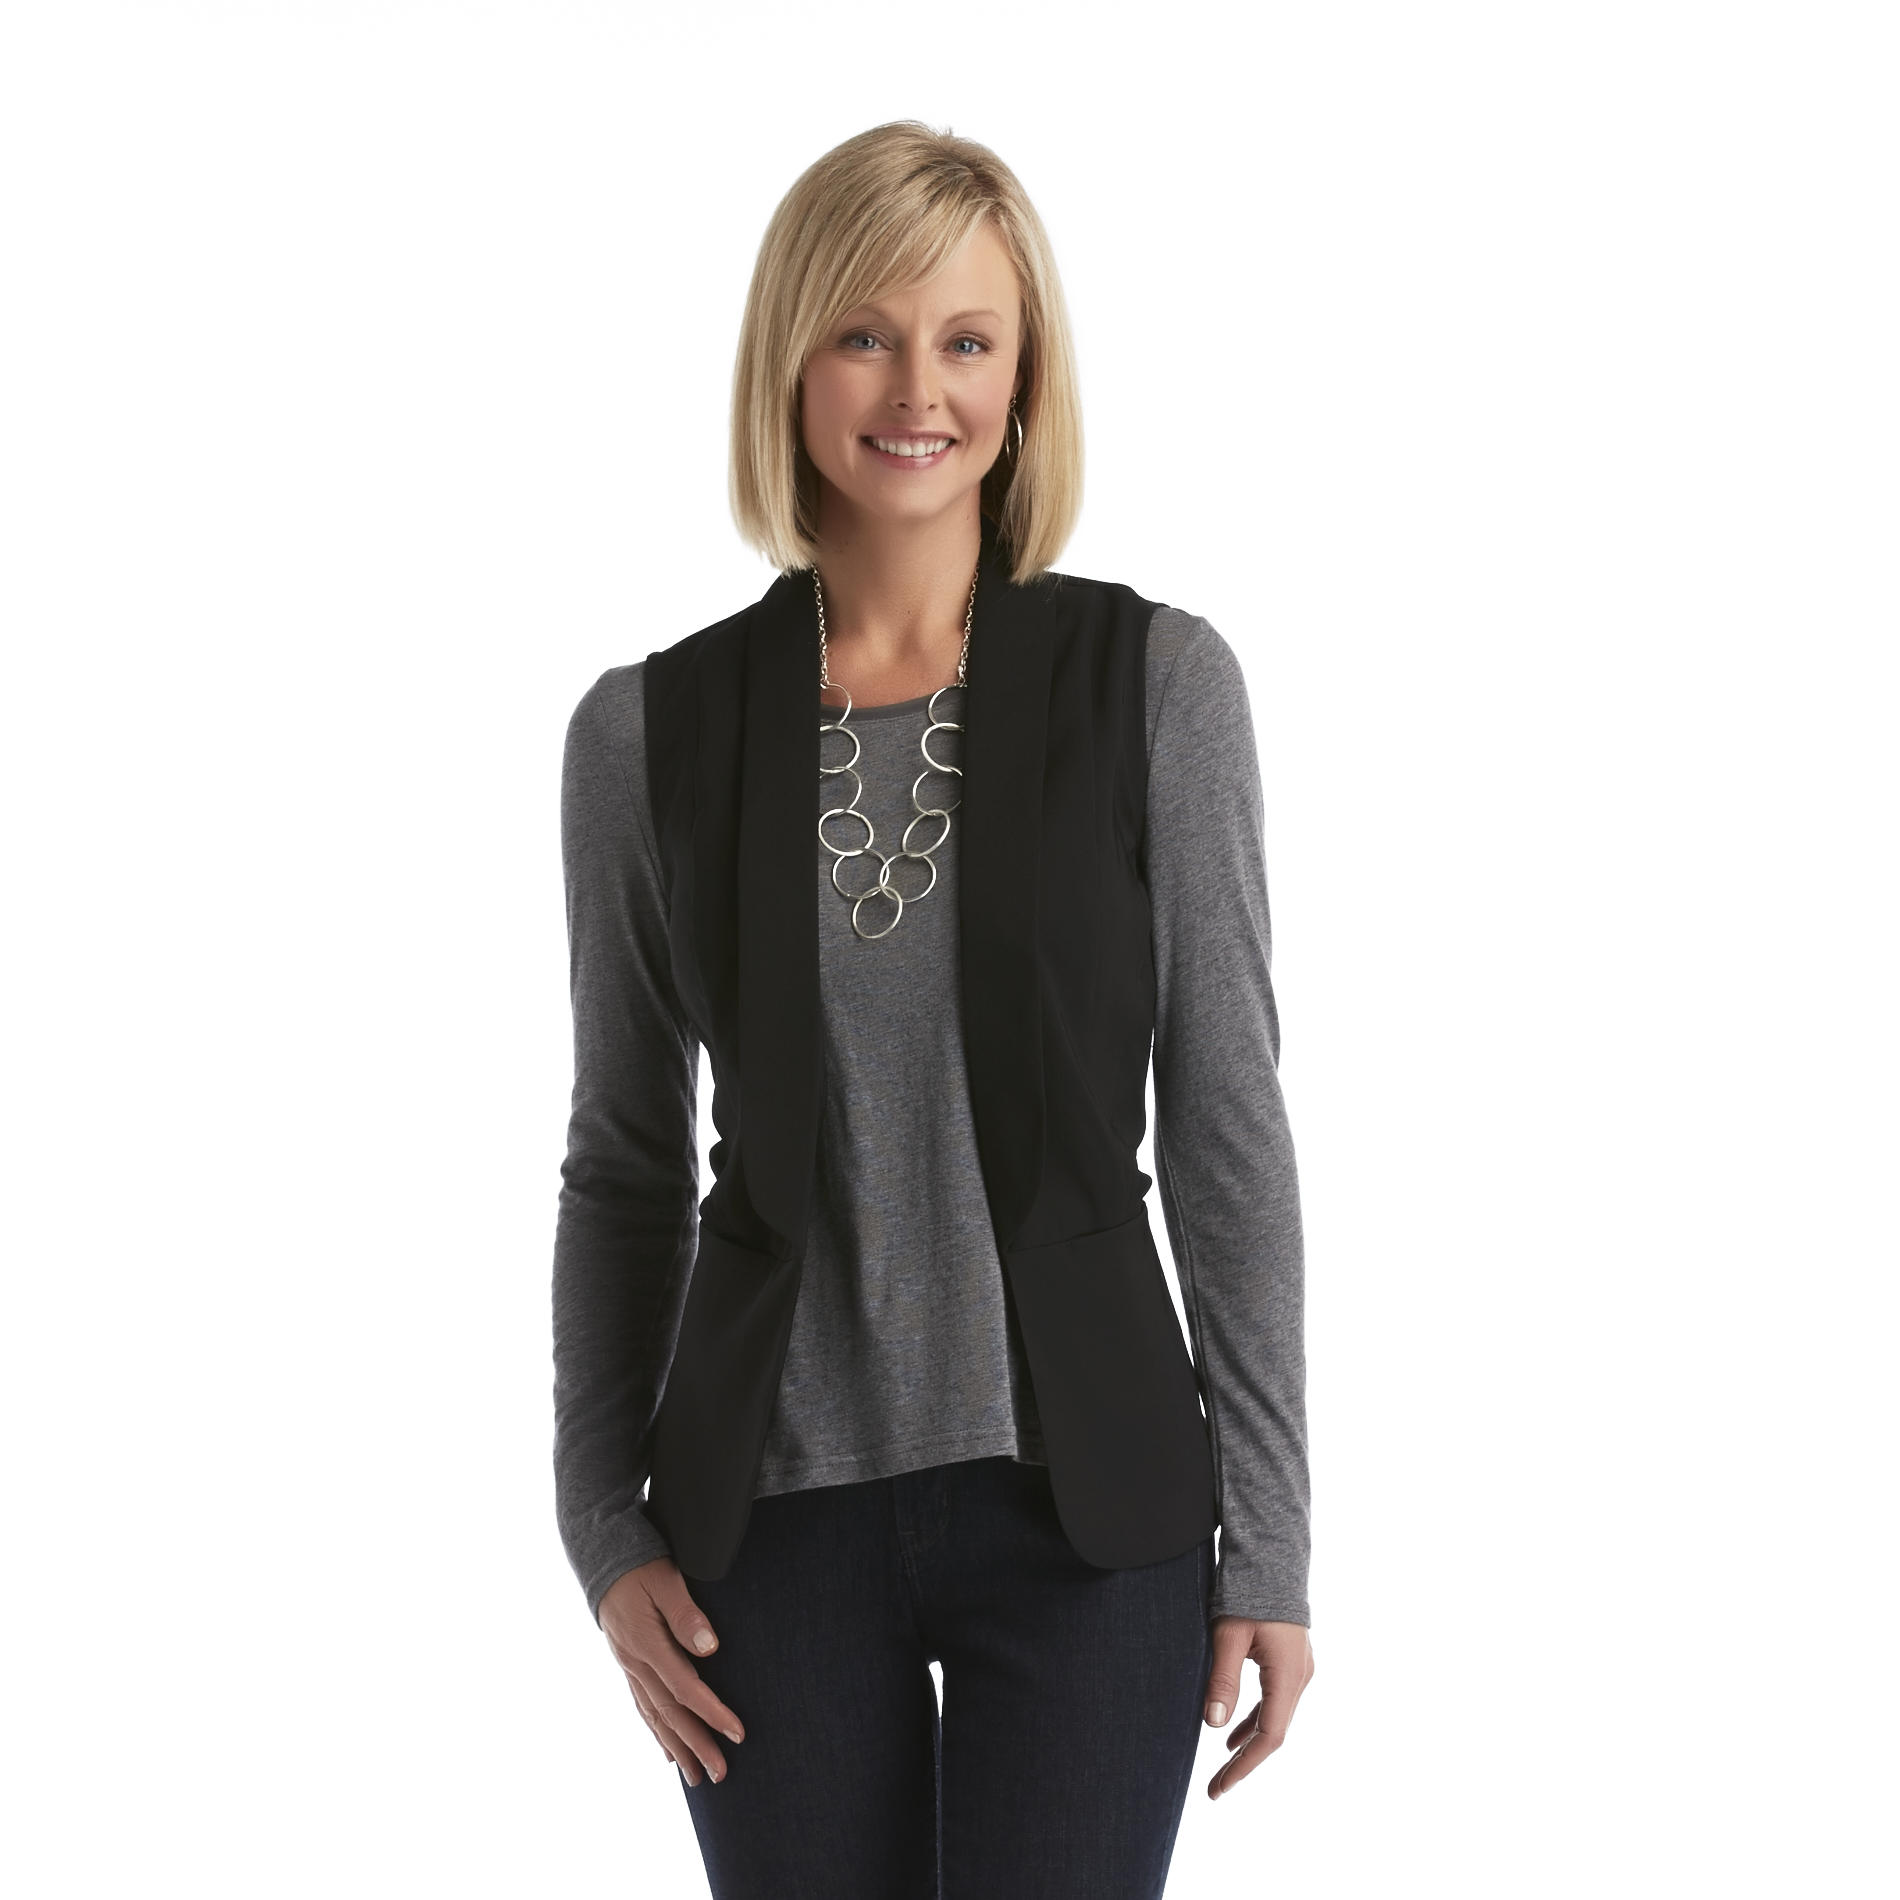 JWK Women's Vest at Sears.com